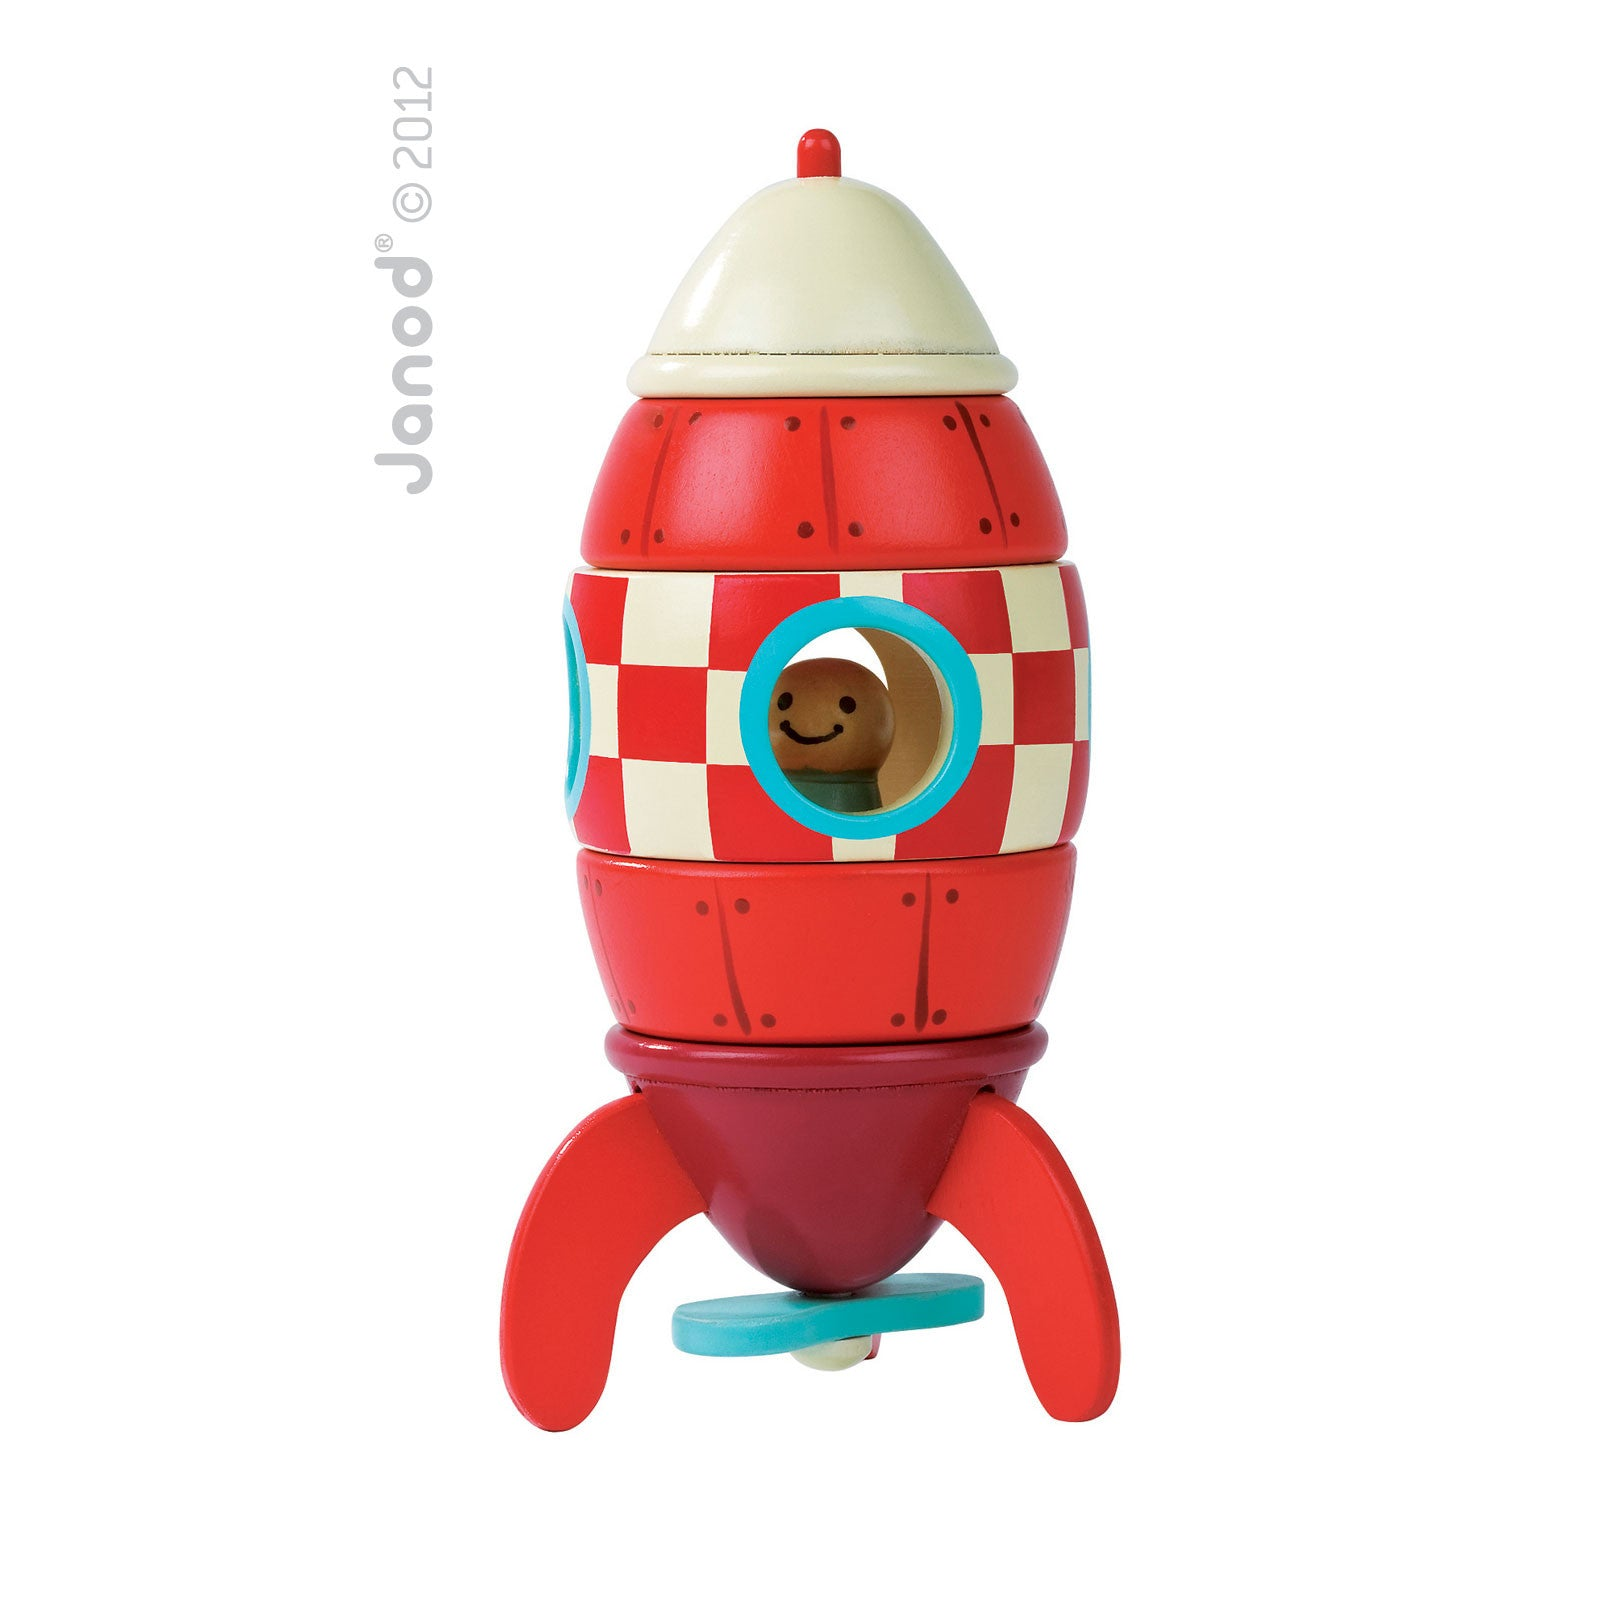 Janod Magnetic Rocket Toy Janod Magnet Toys at Little Earth Nest Eco Shop